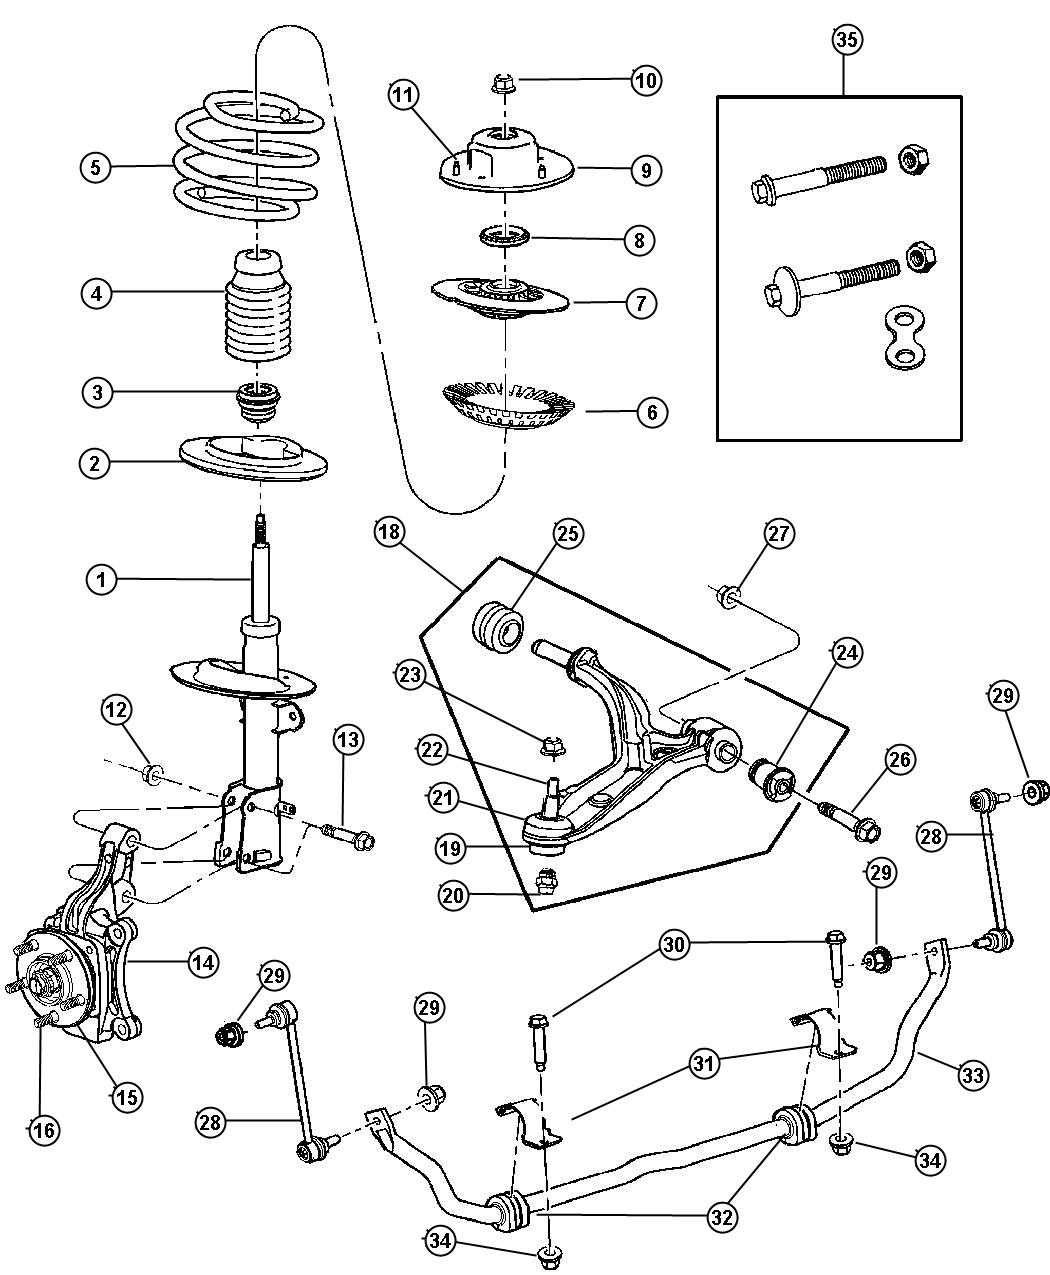 dodge ram front end diagram trane xe1000 parts 2007 1500 rear axle great installation of wiring 2000 online rh 13 5 15 philoxenia restaurant